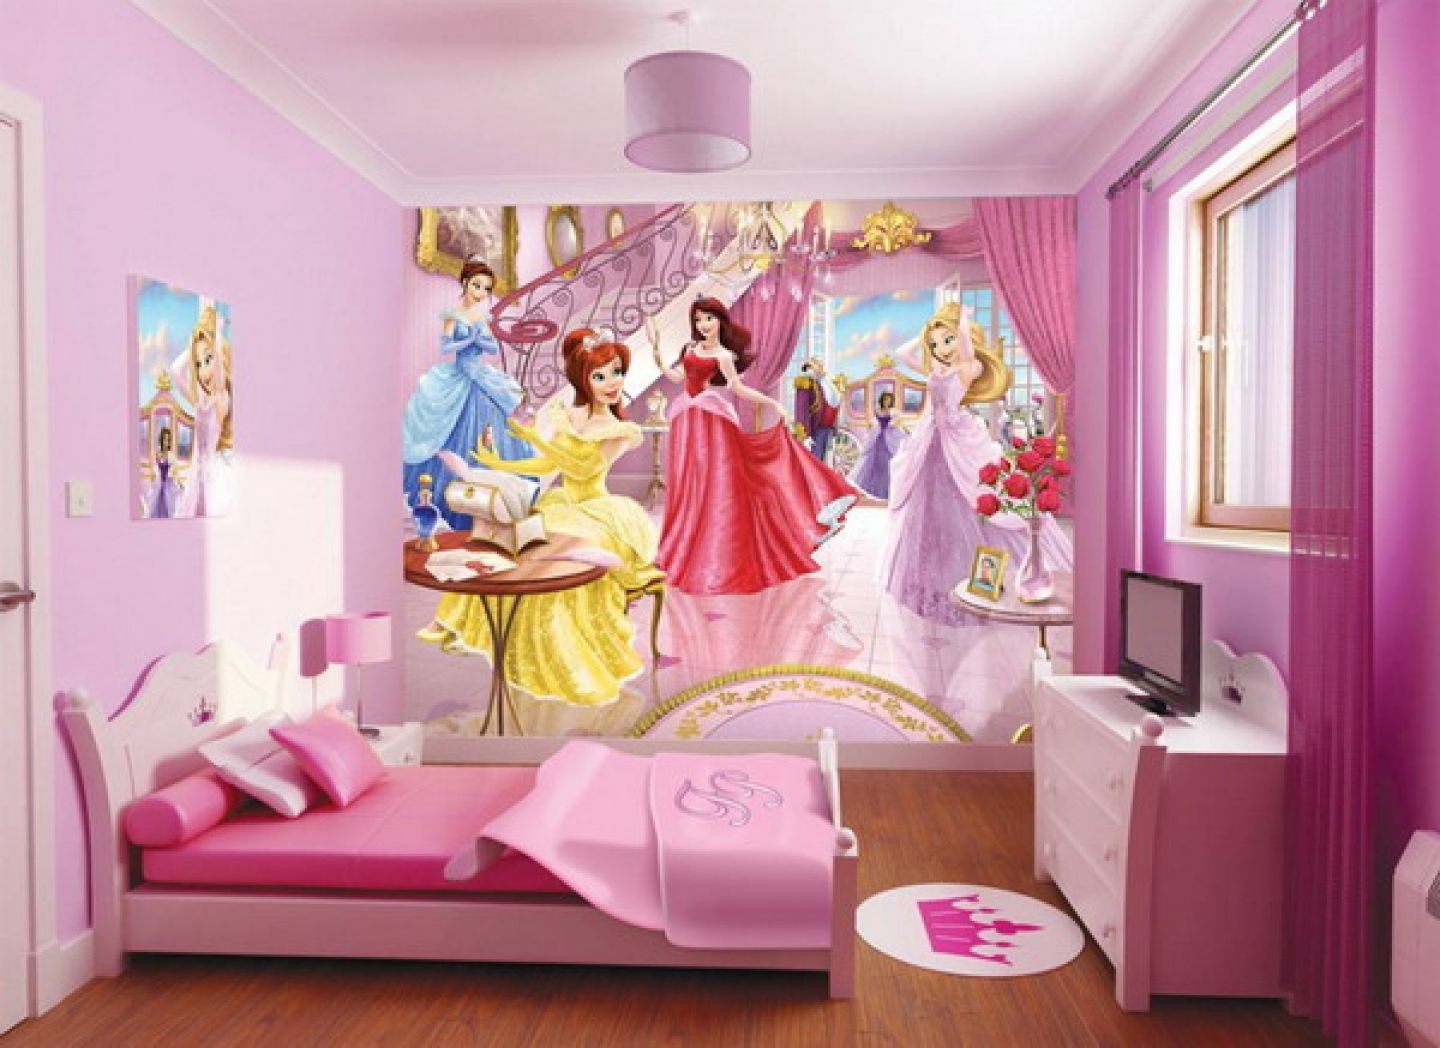 Princess Bedroom Ideas With Colorful Pink Furniture | Girl ...